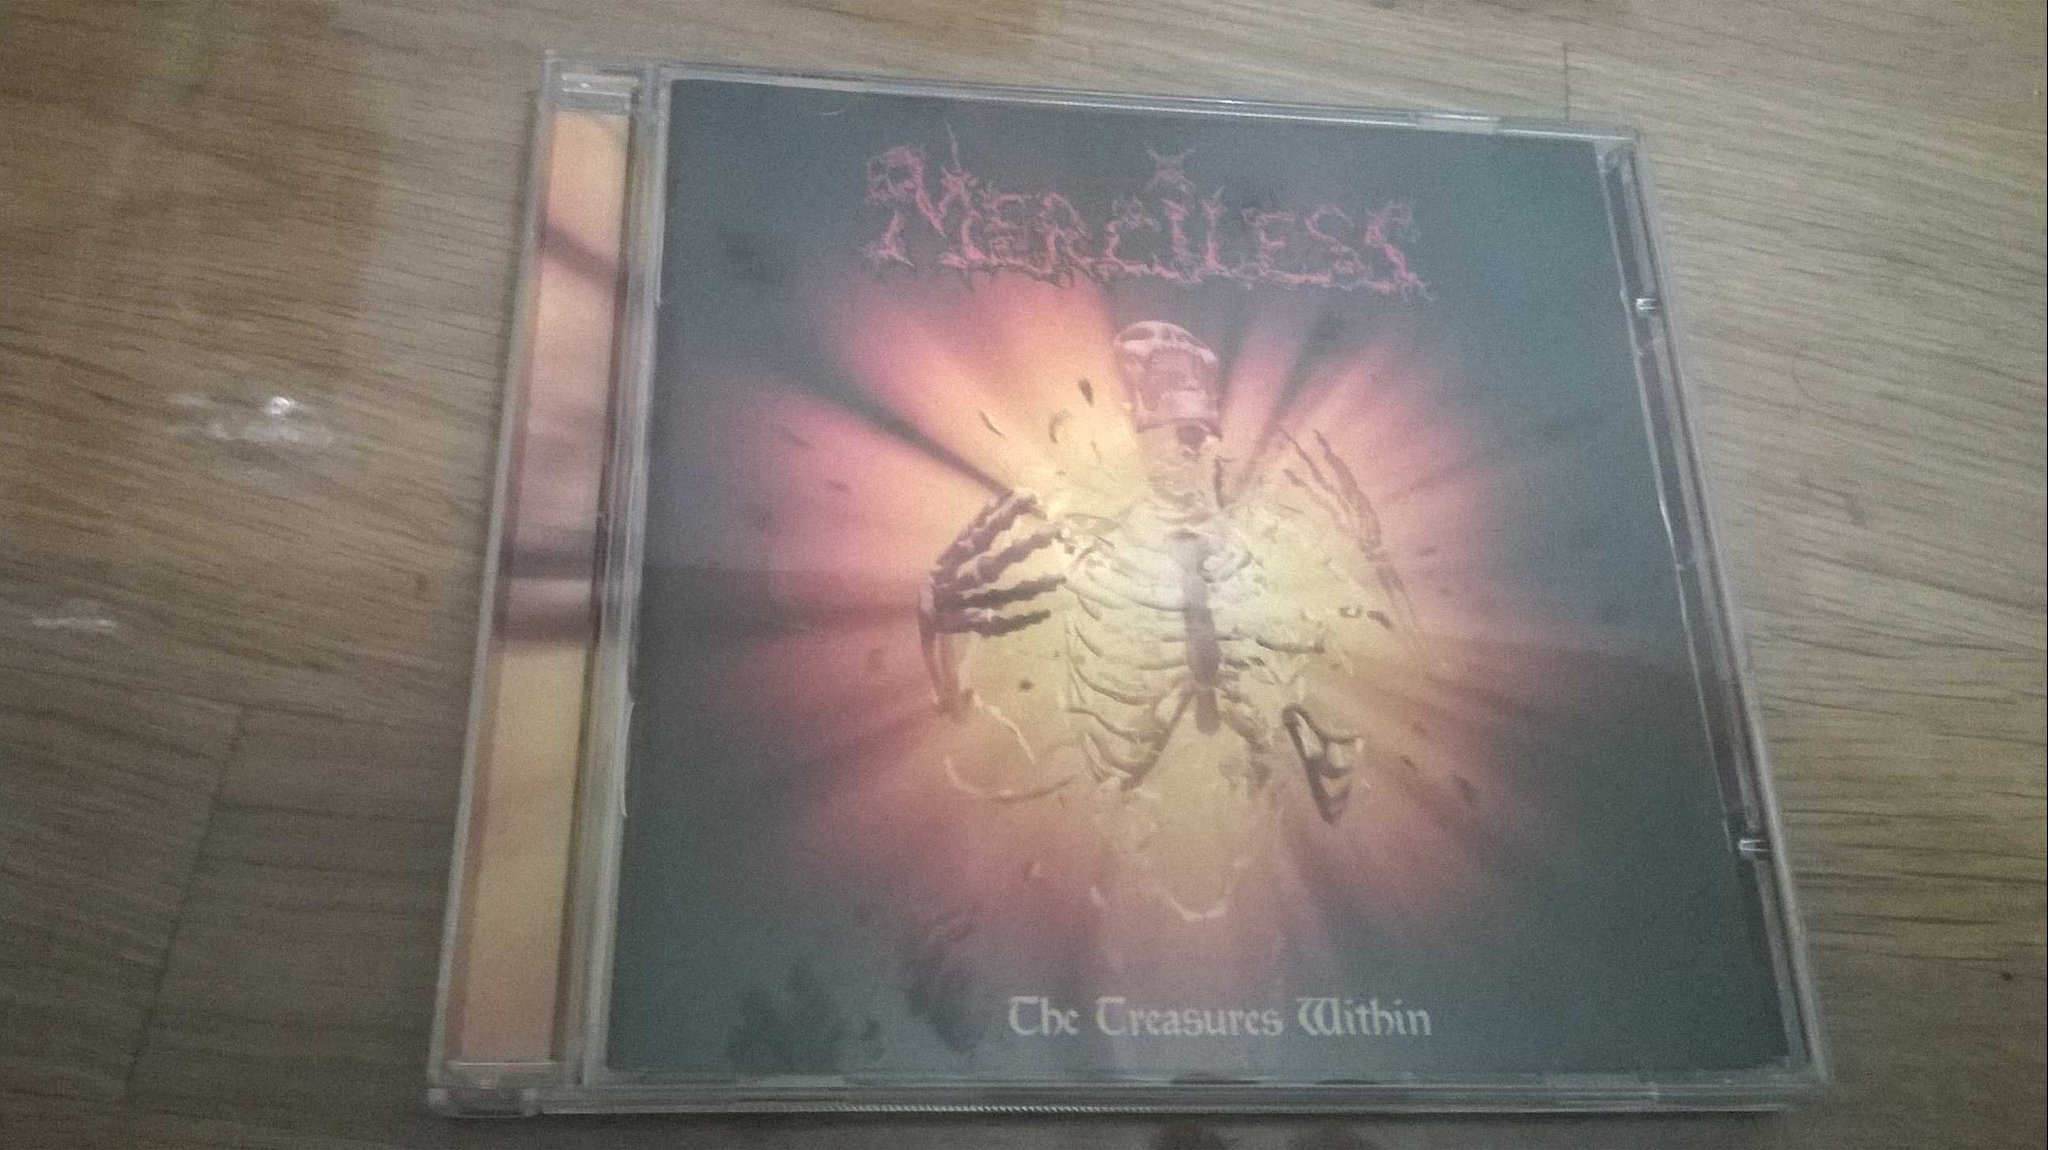 Merciless - The Treasures Within, CD